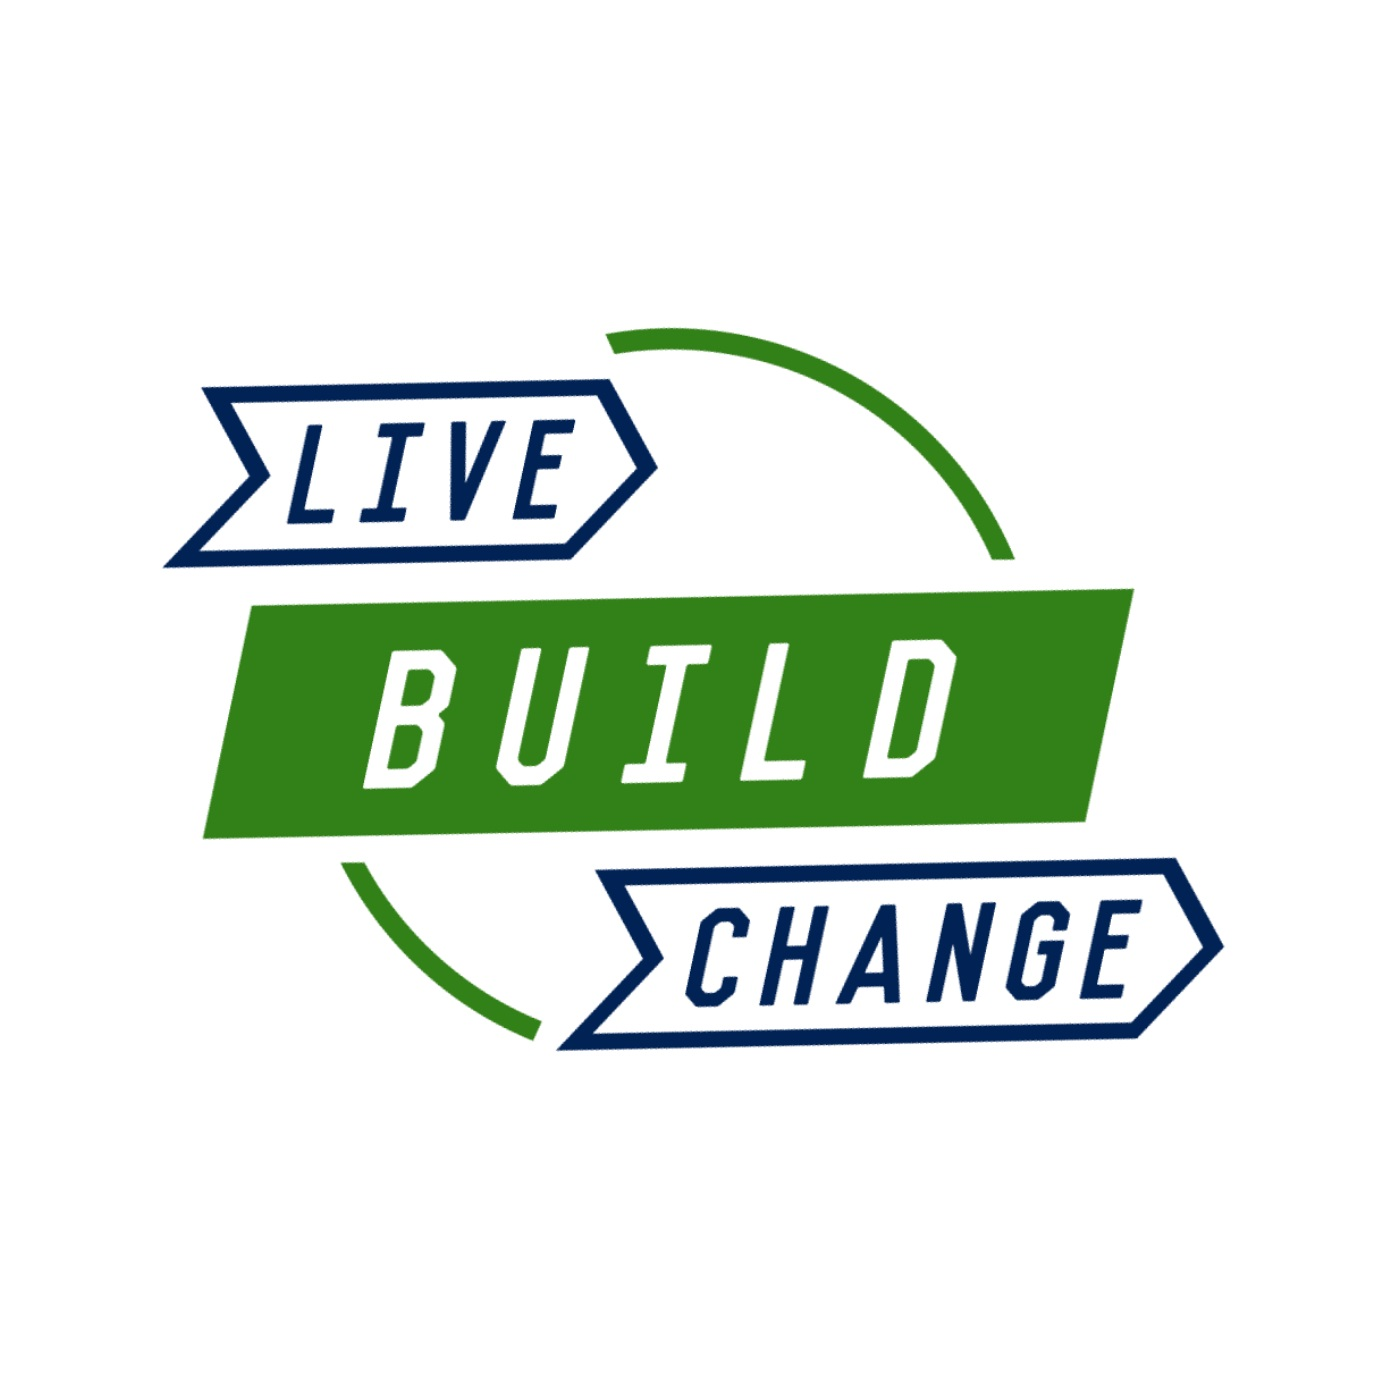 Live - Build - Change the Christian faith and business show